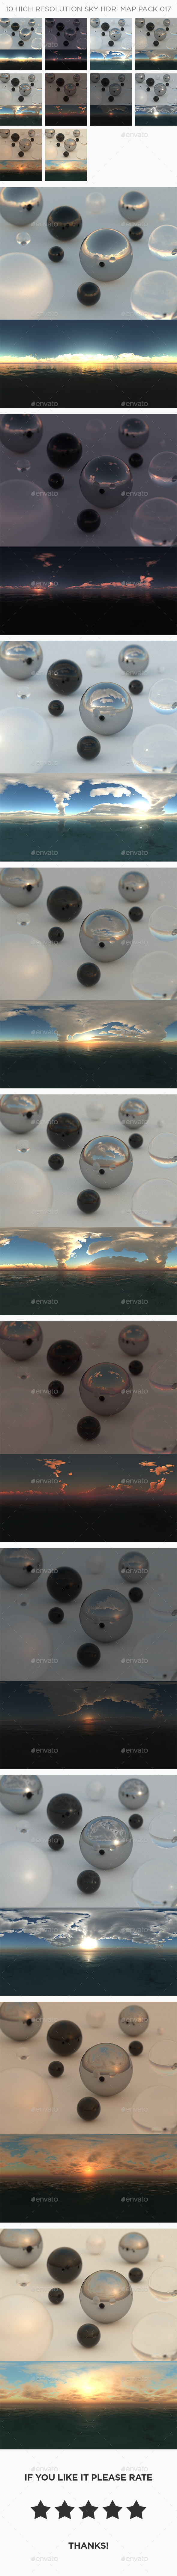 10 High Resolution Sky HDRi Maps Pack 017 - 3DOcean Item for Sale